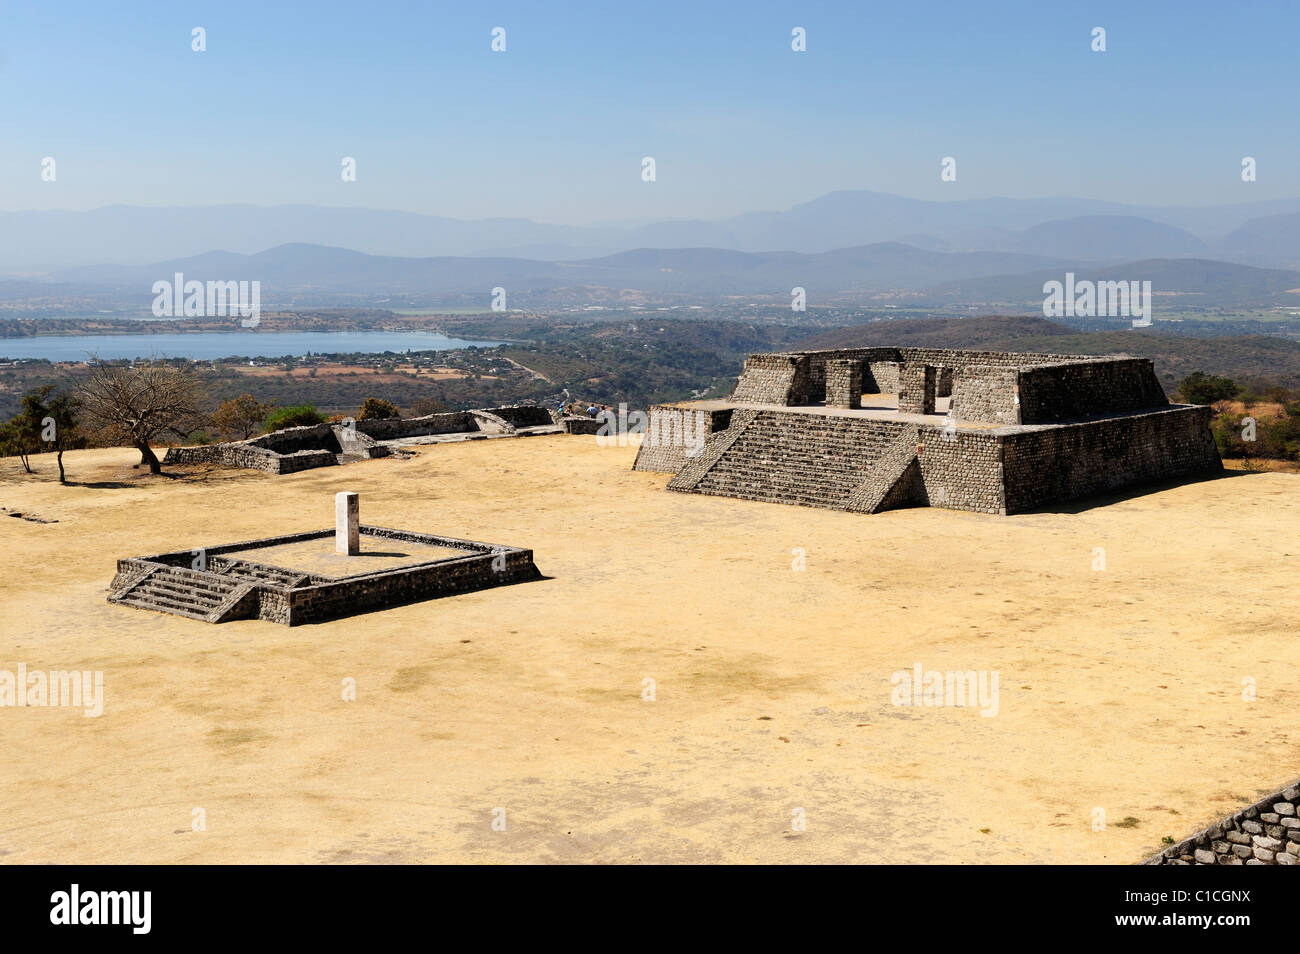 Plaza of the Two-Glyph Stela with western platform and temple in background at Xochicalco in Morelos State, Mexico - Stock Image